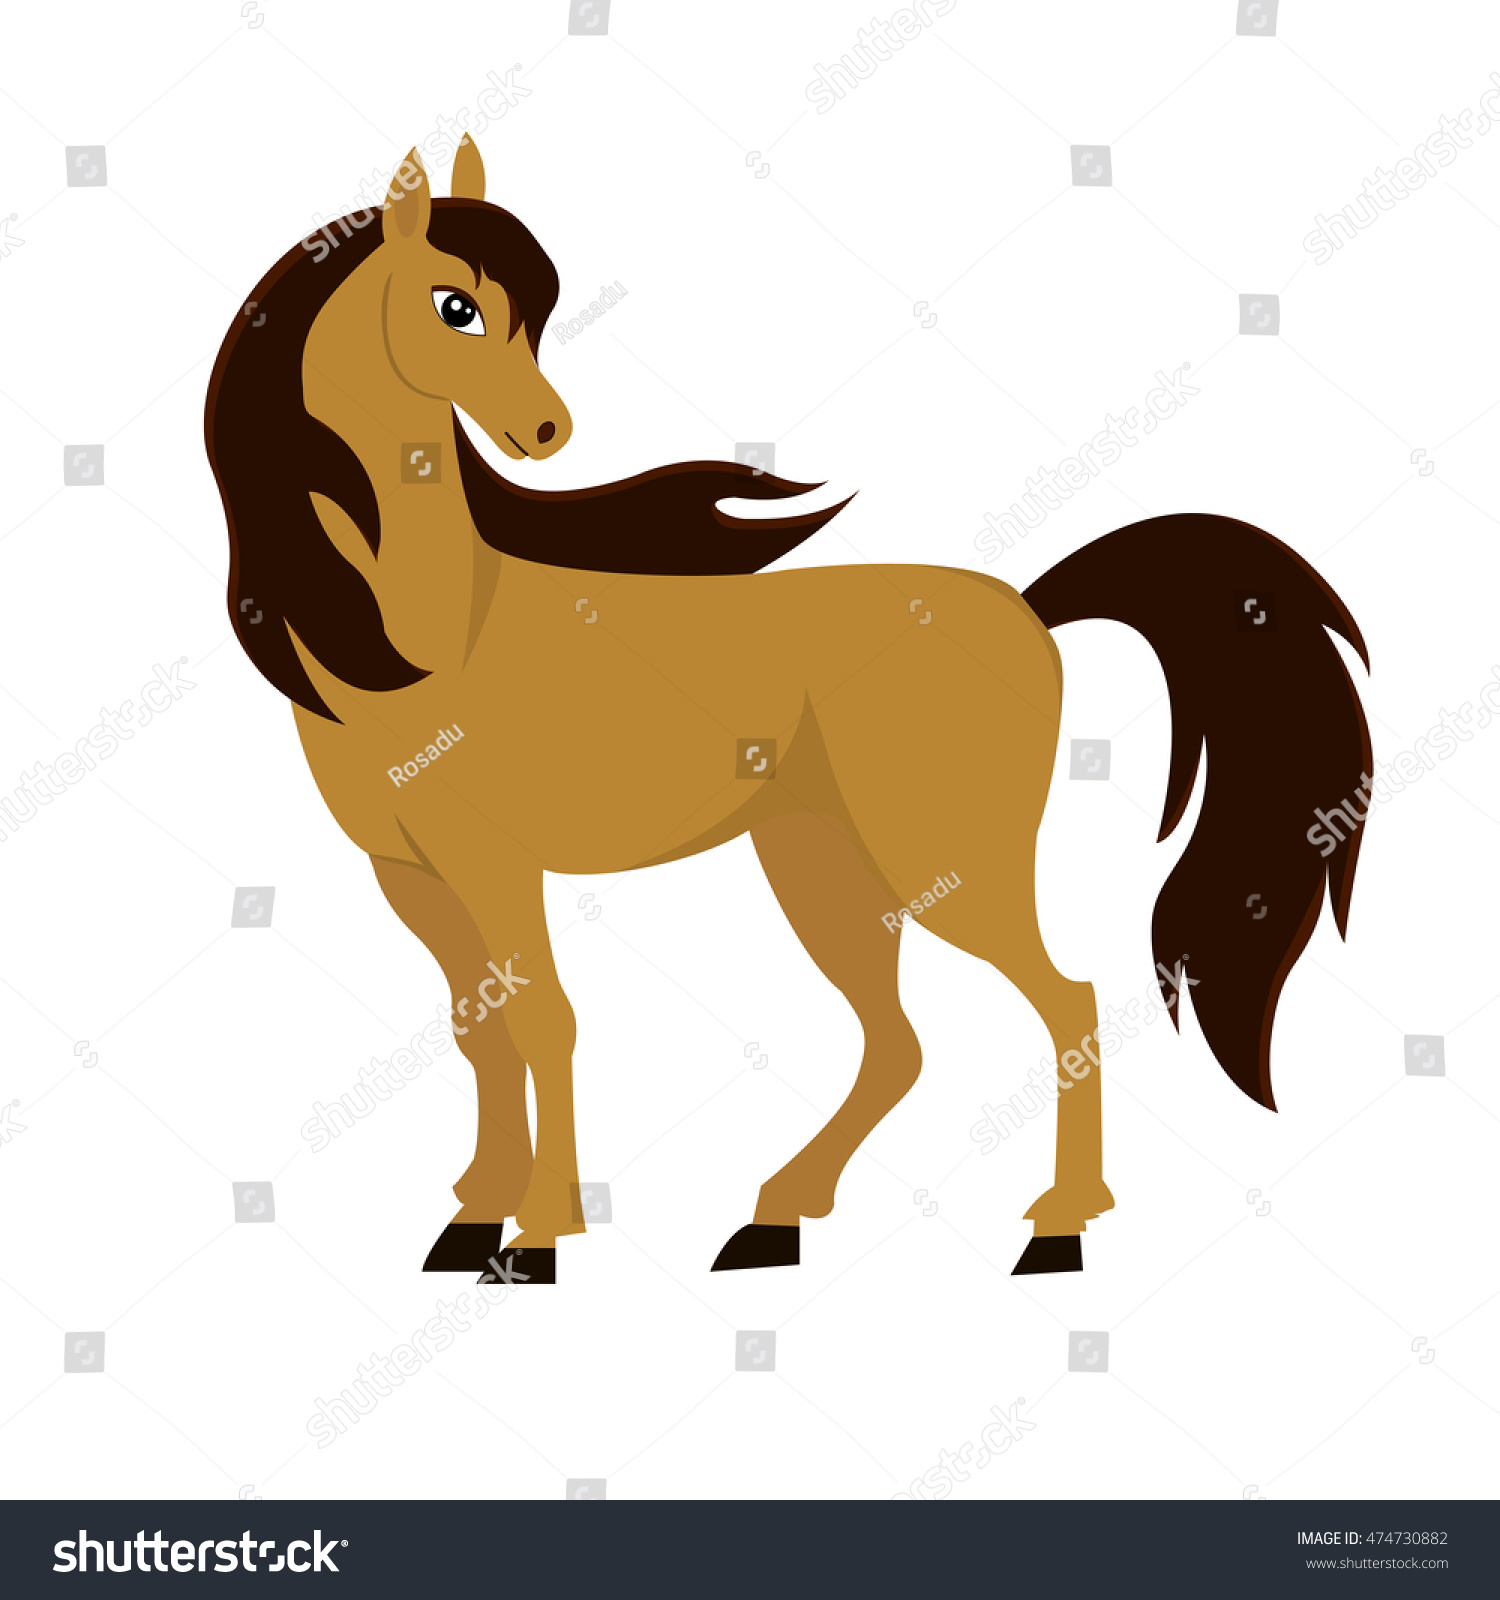 Brown Horse Isolated On White Background Stock Vector ...